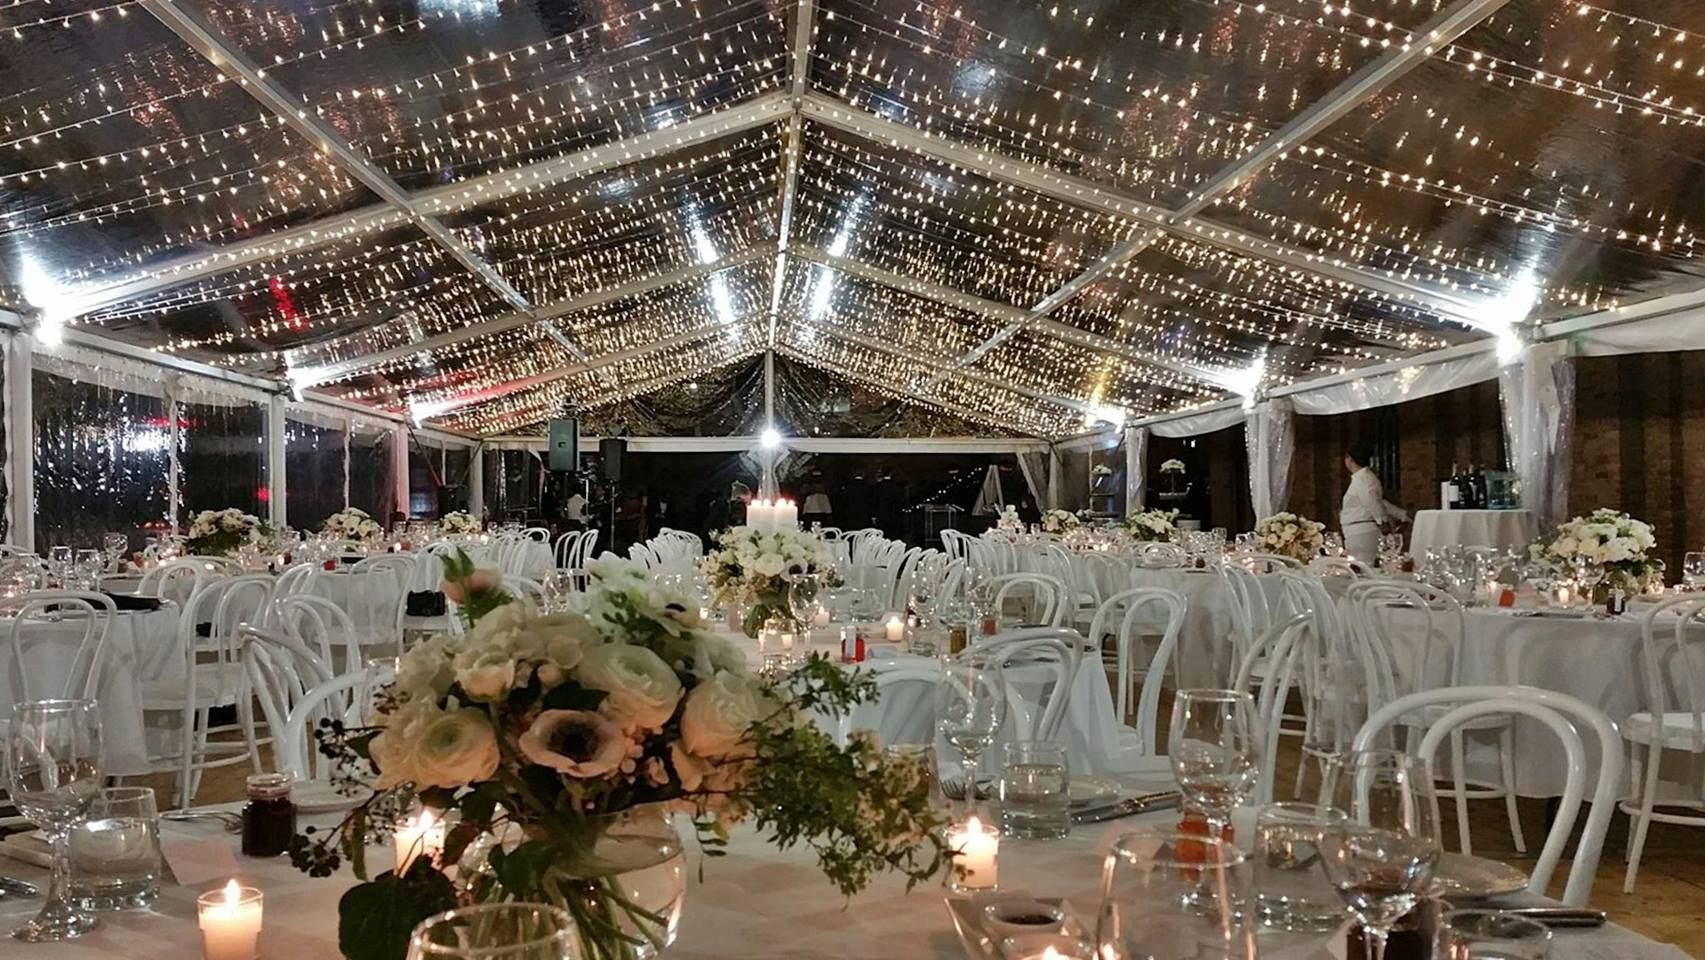 X Clear Wedding Marquee With Fairy Lights Halogen And Wooden Flooring